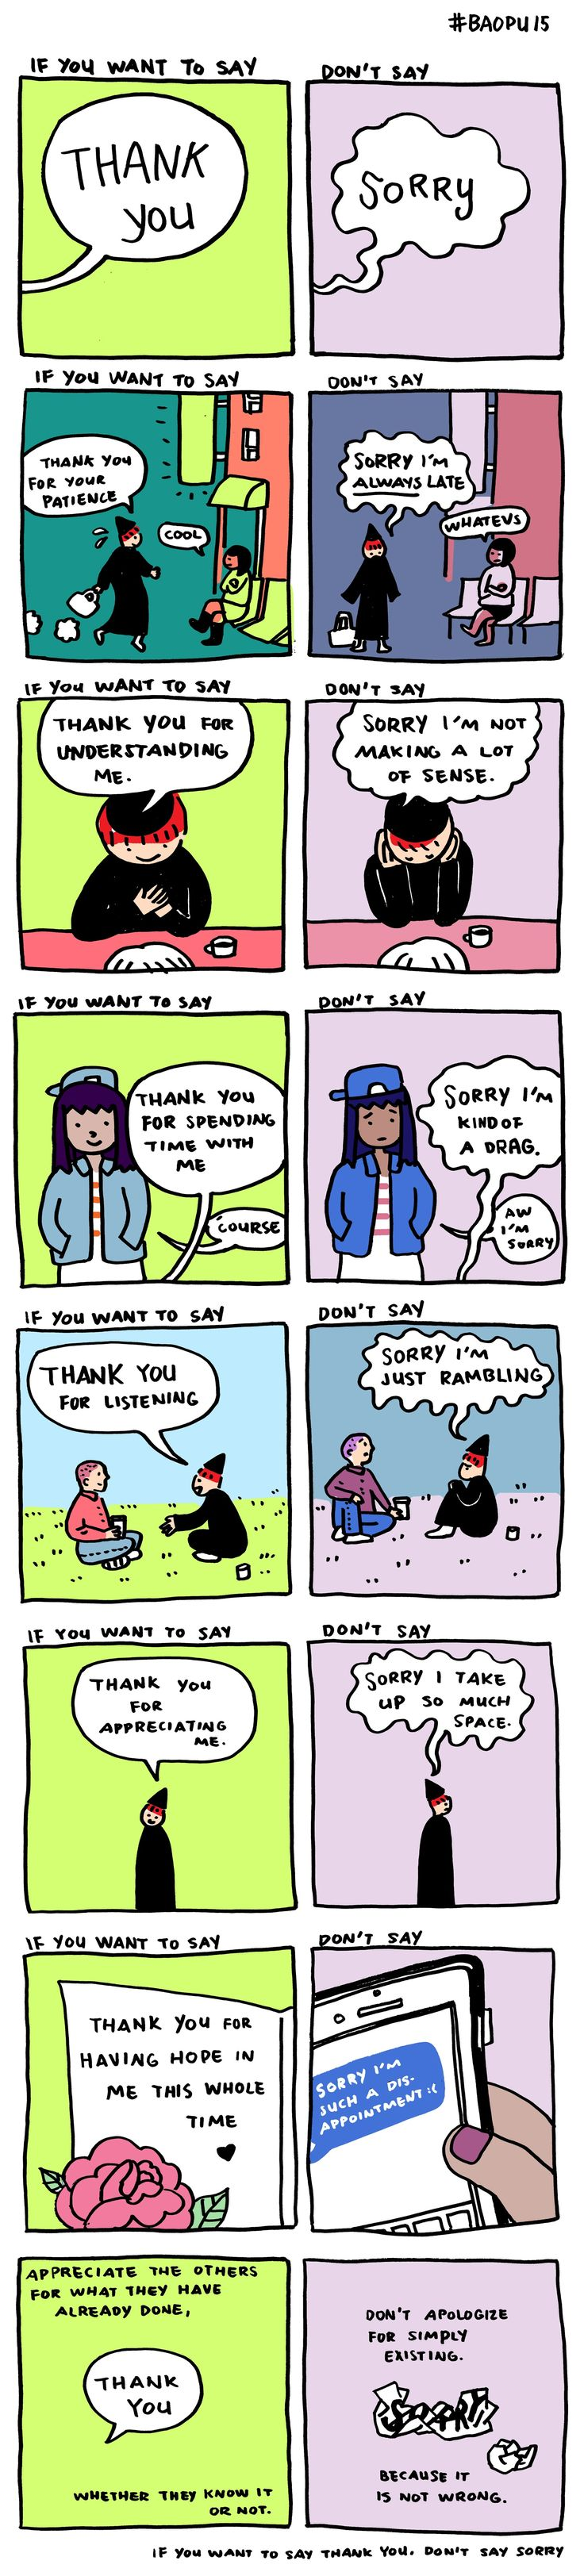 "Women (and some men) are conditioned to apologize for taking up space.  If we are anything less than 100% accommodating, we apologize.    Replacing the persistent ""I'm sorry"" with appreciation communicates gratitude for the other person, instead of unnecessarily apologizing for normal human needs."